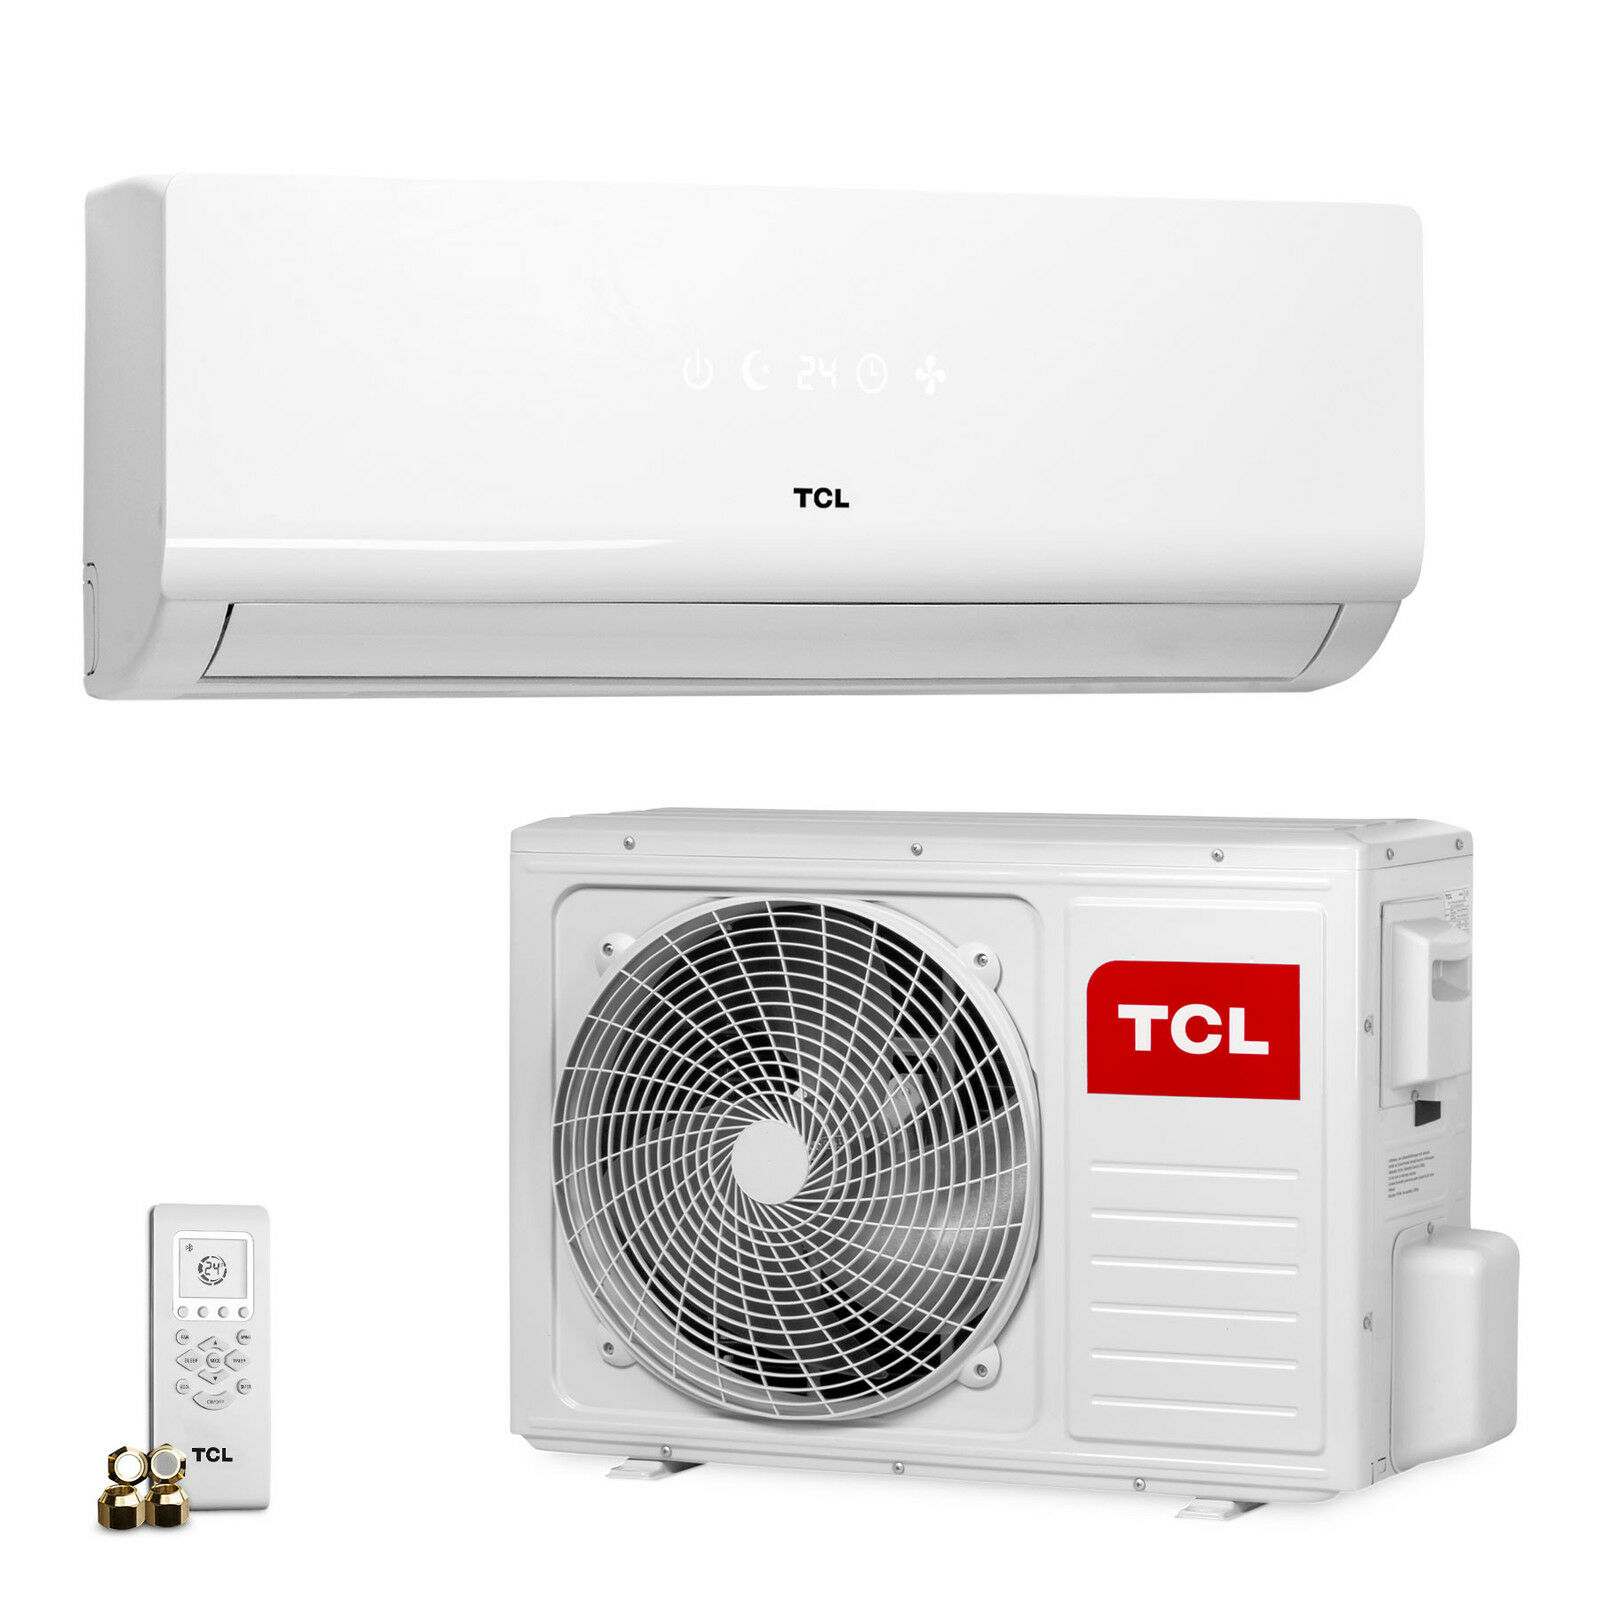 tcl klima 12000 btu split klimaanlage inverter klimager t. Black Bedroom Furniture Sets. Home Design Ideas